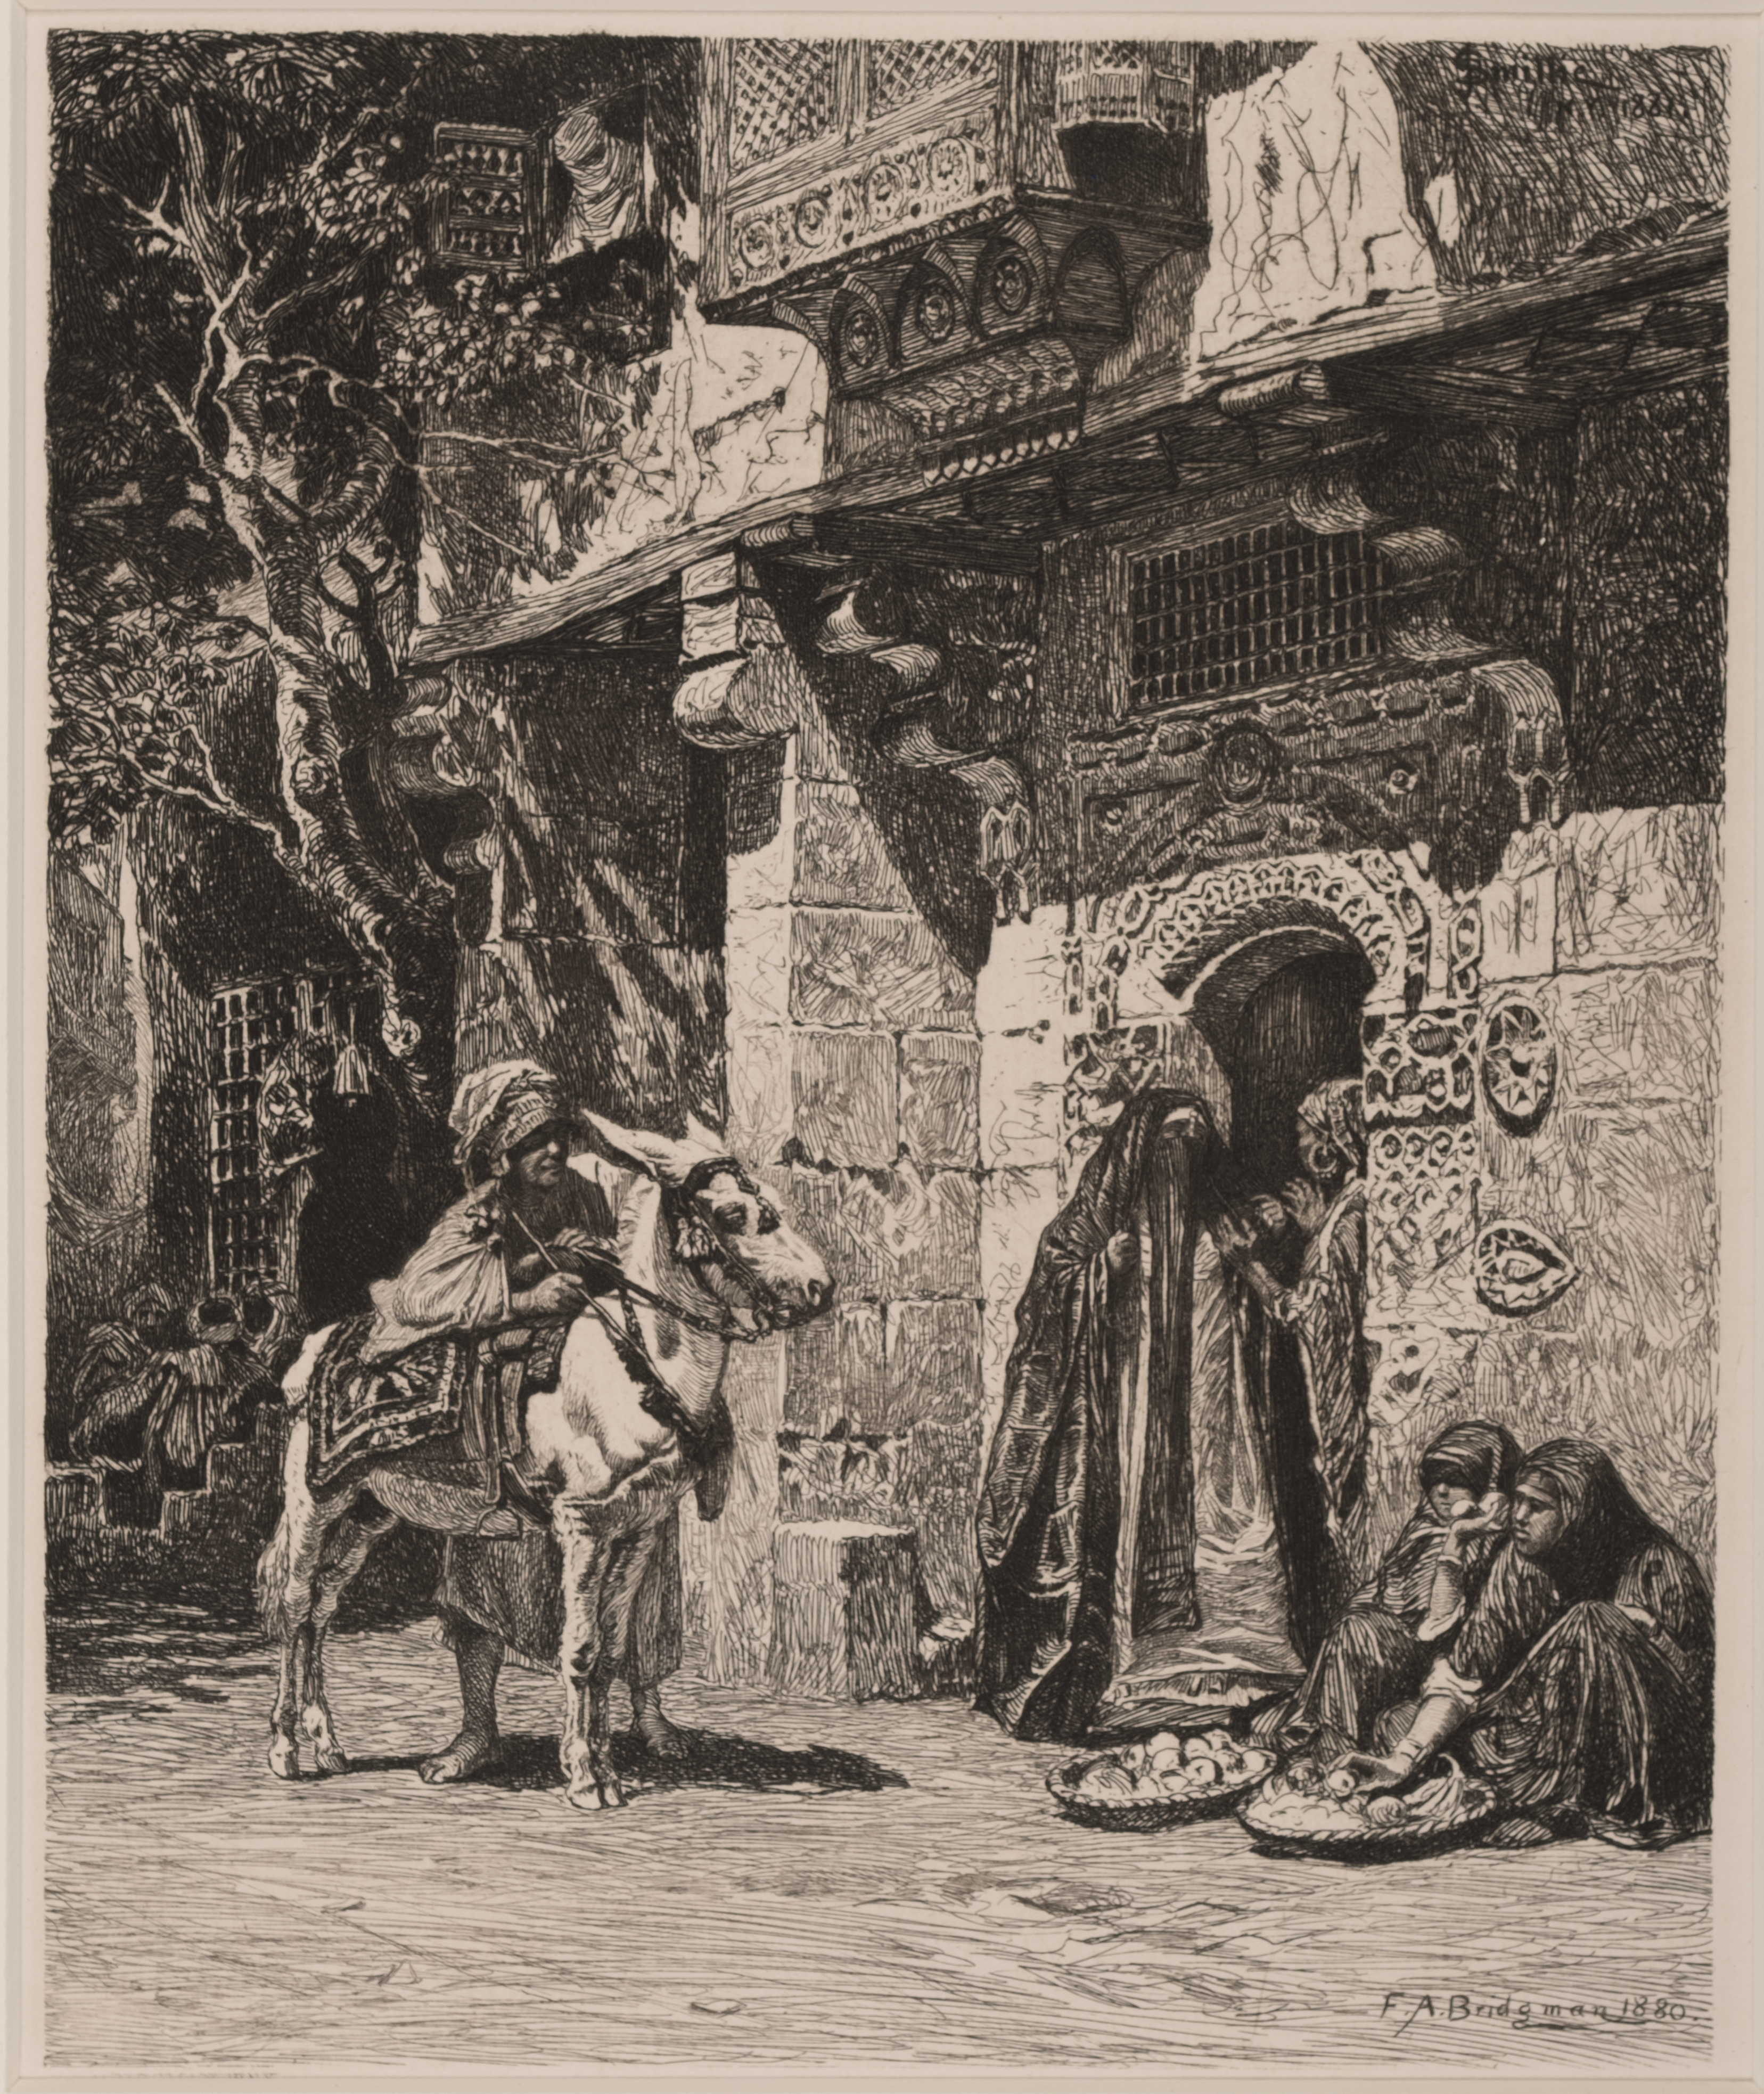 Etching of a person by a white horse approaching people talking and selling goods in a doorway